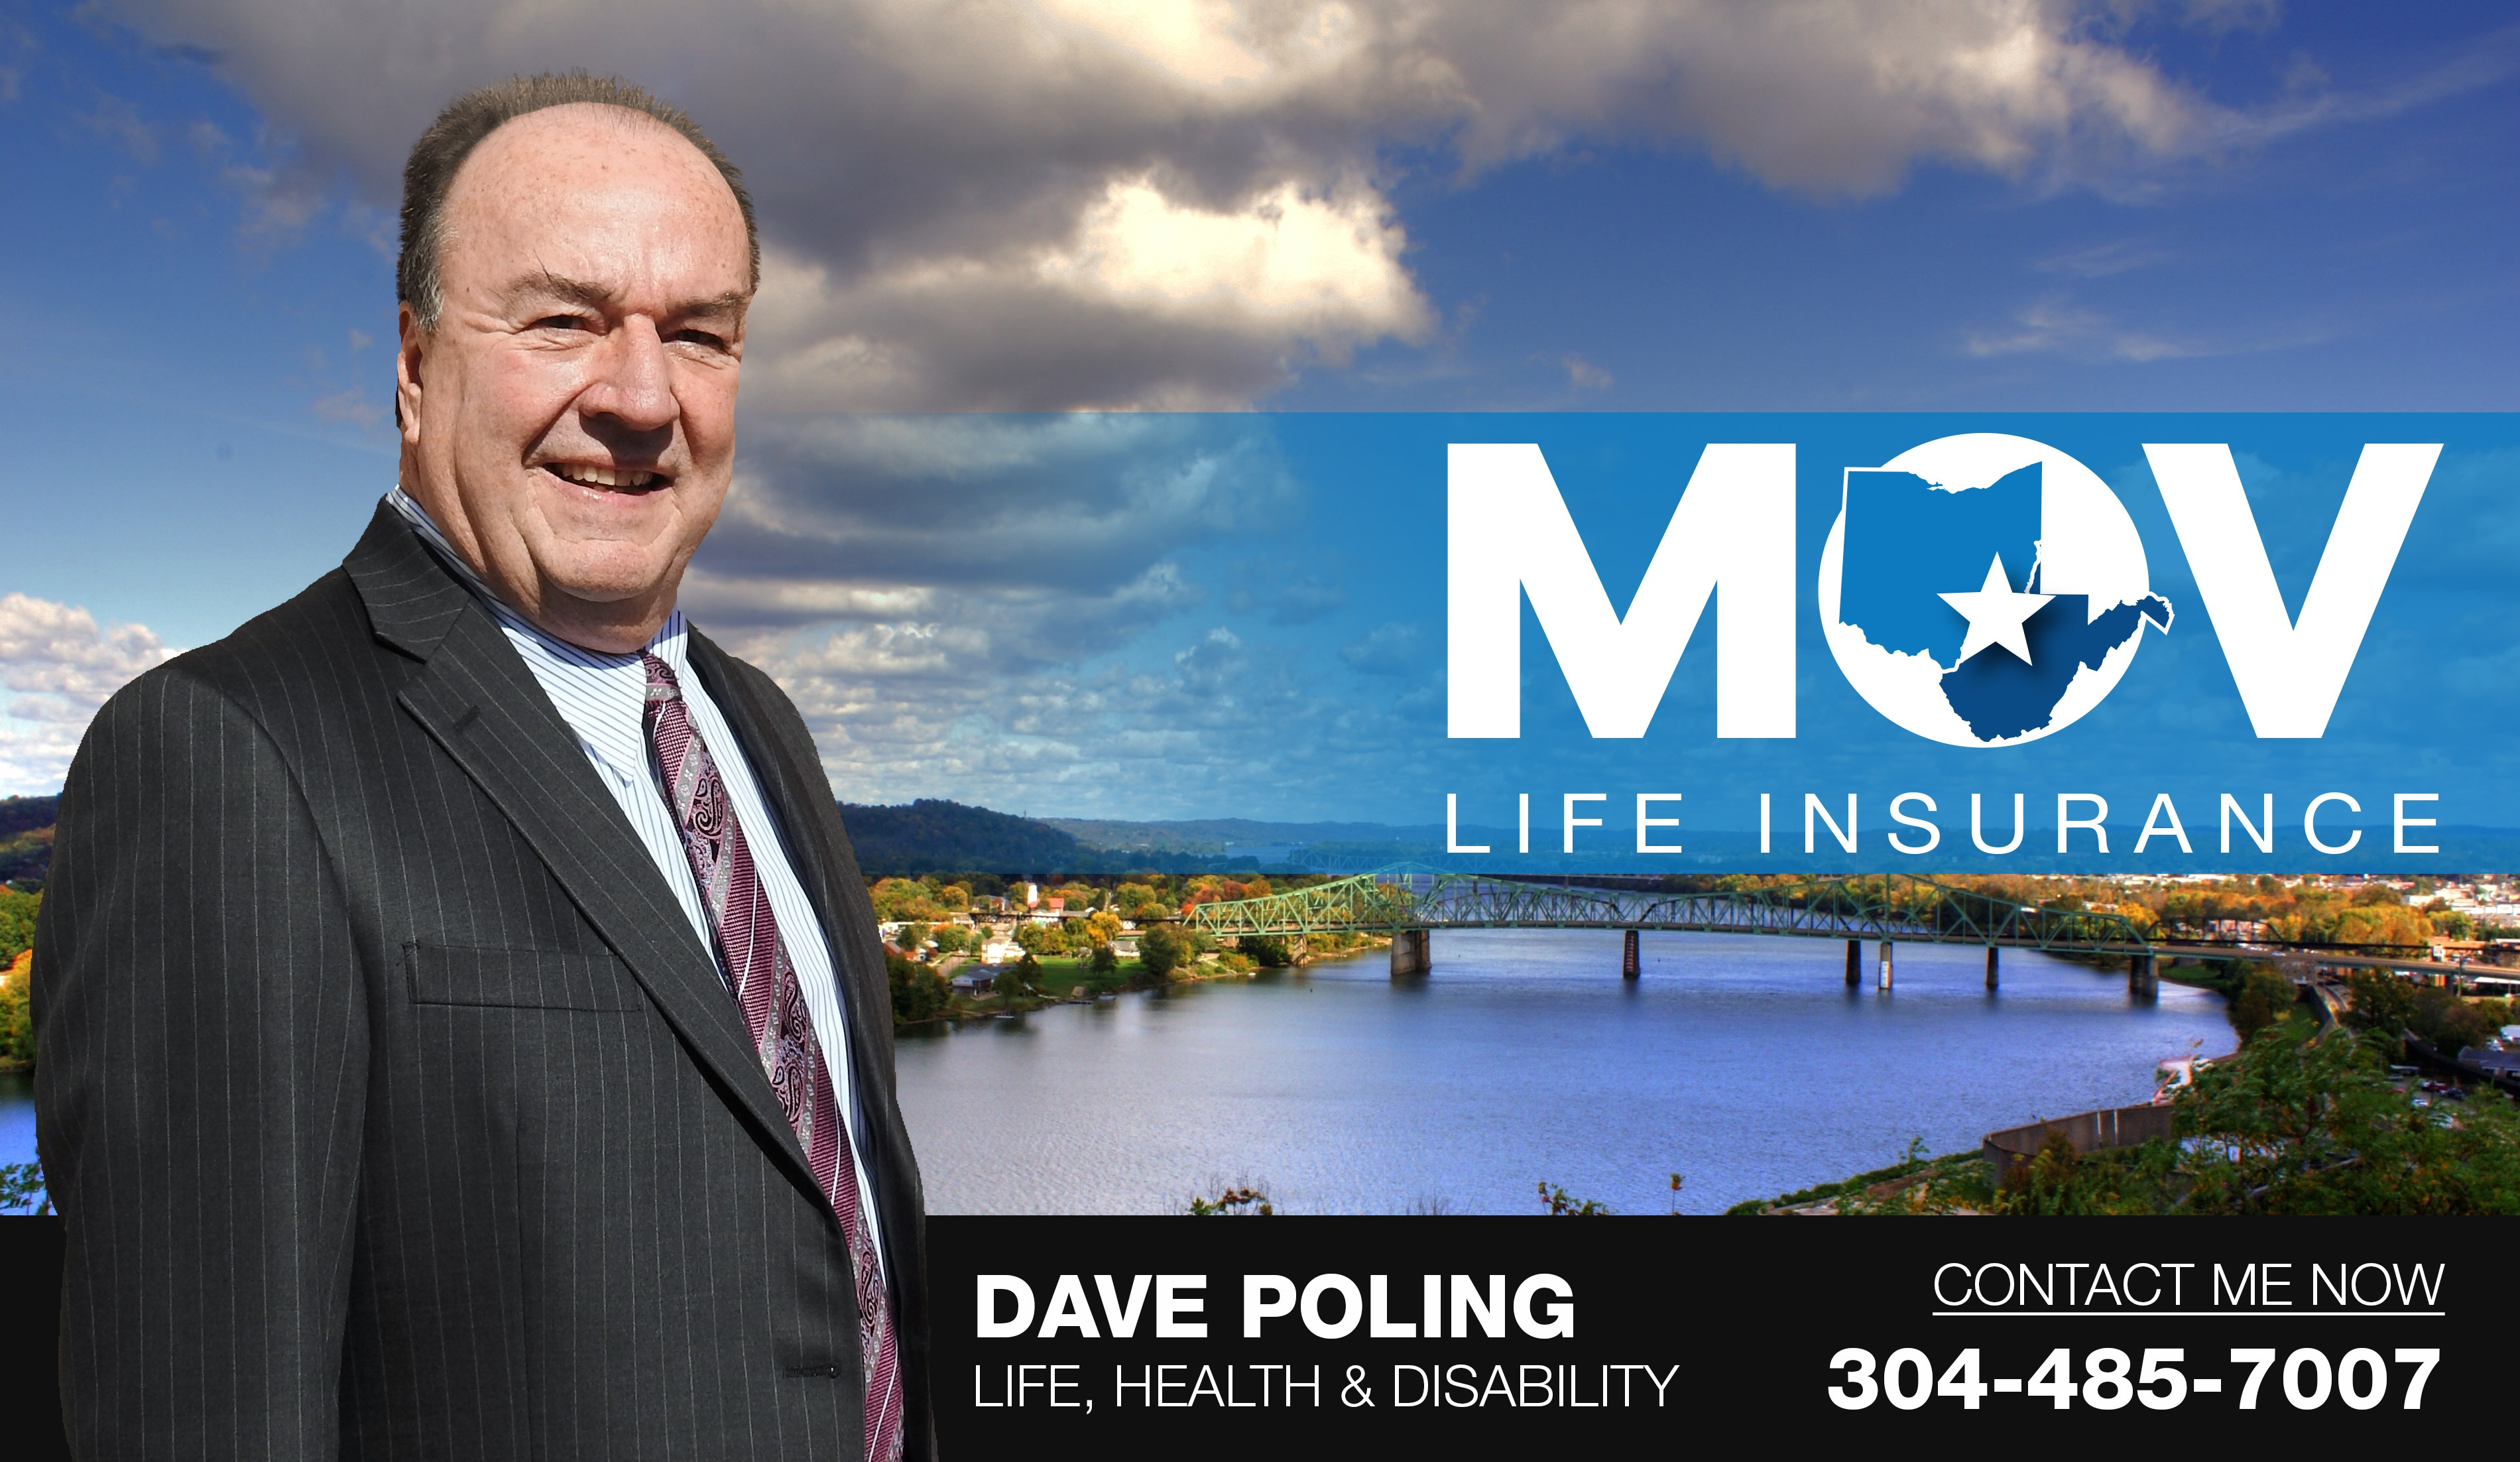 Dave Poling Insurance Agent - MOV Life Insurance WV and OH